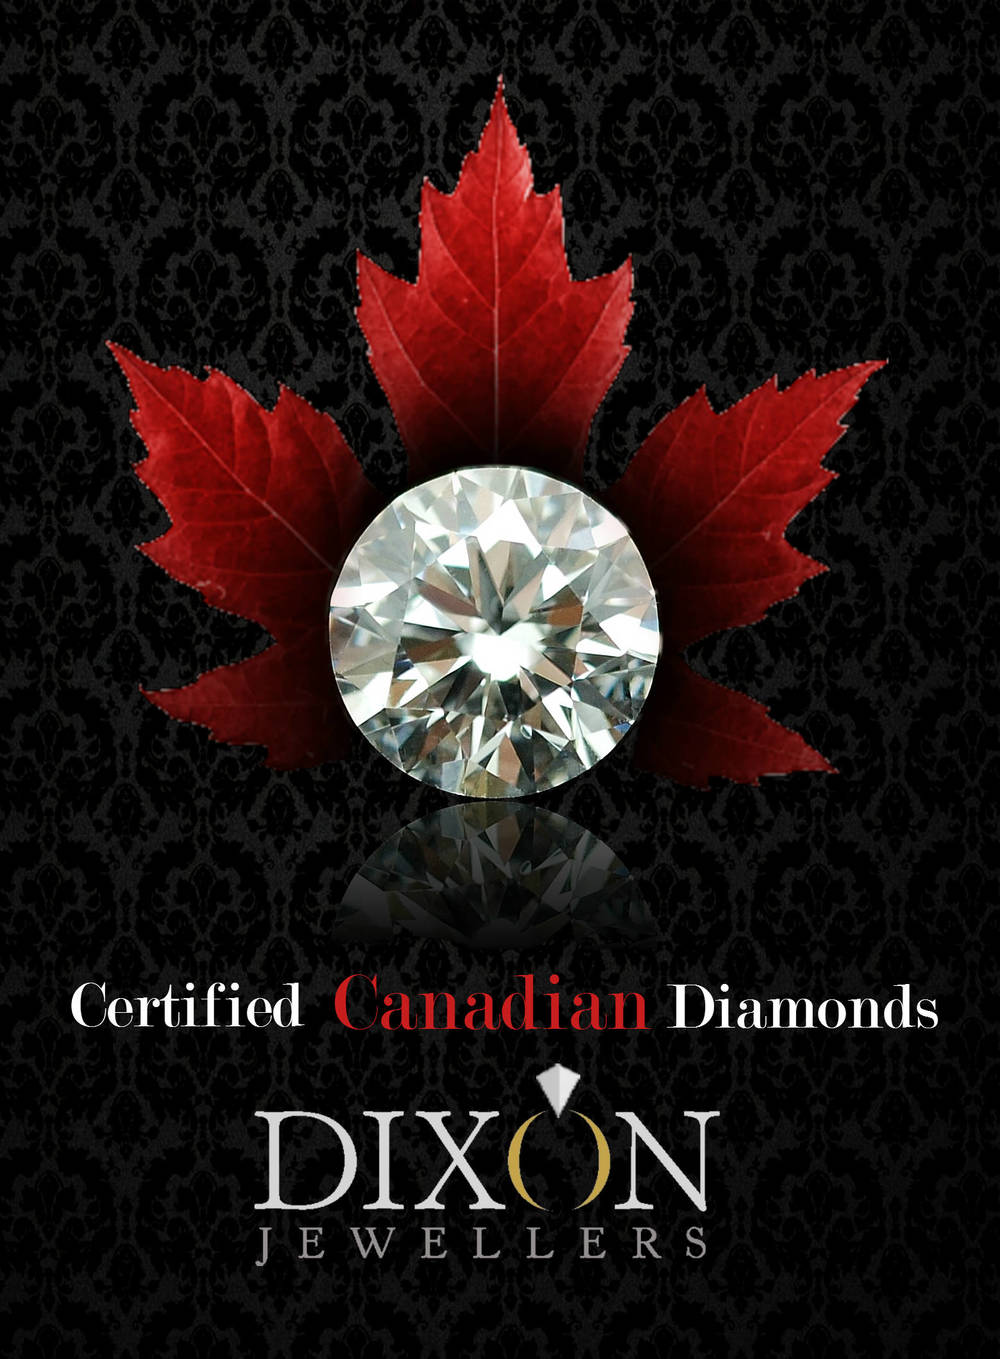 Certified Canadian Diamonds